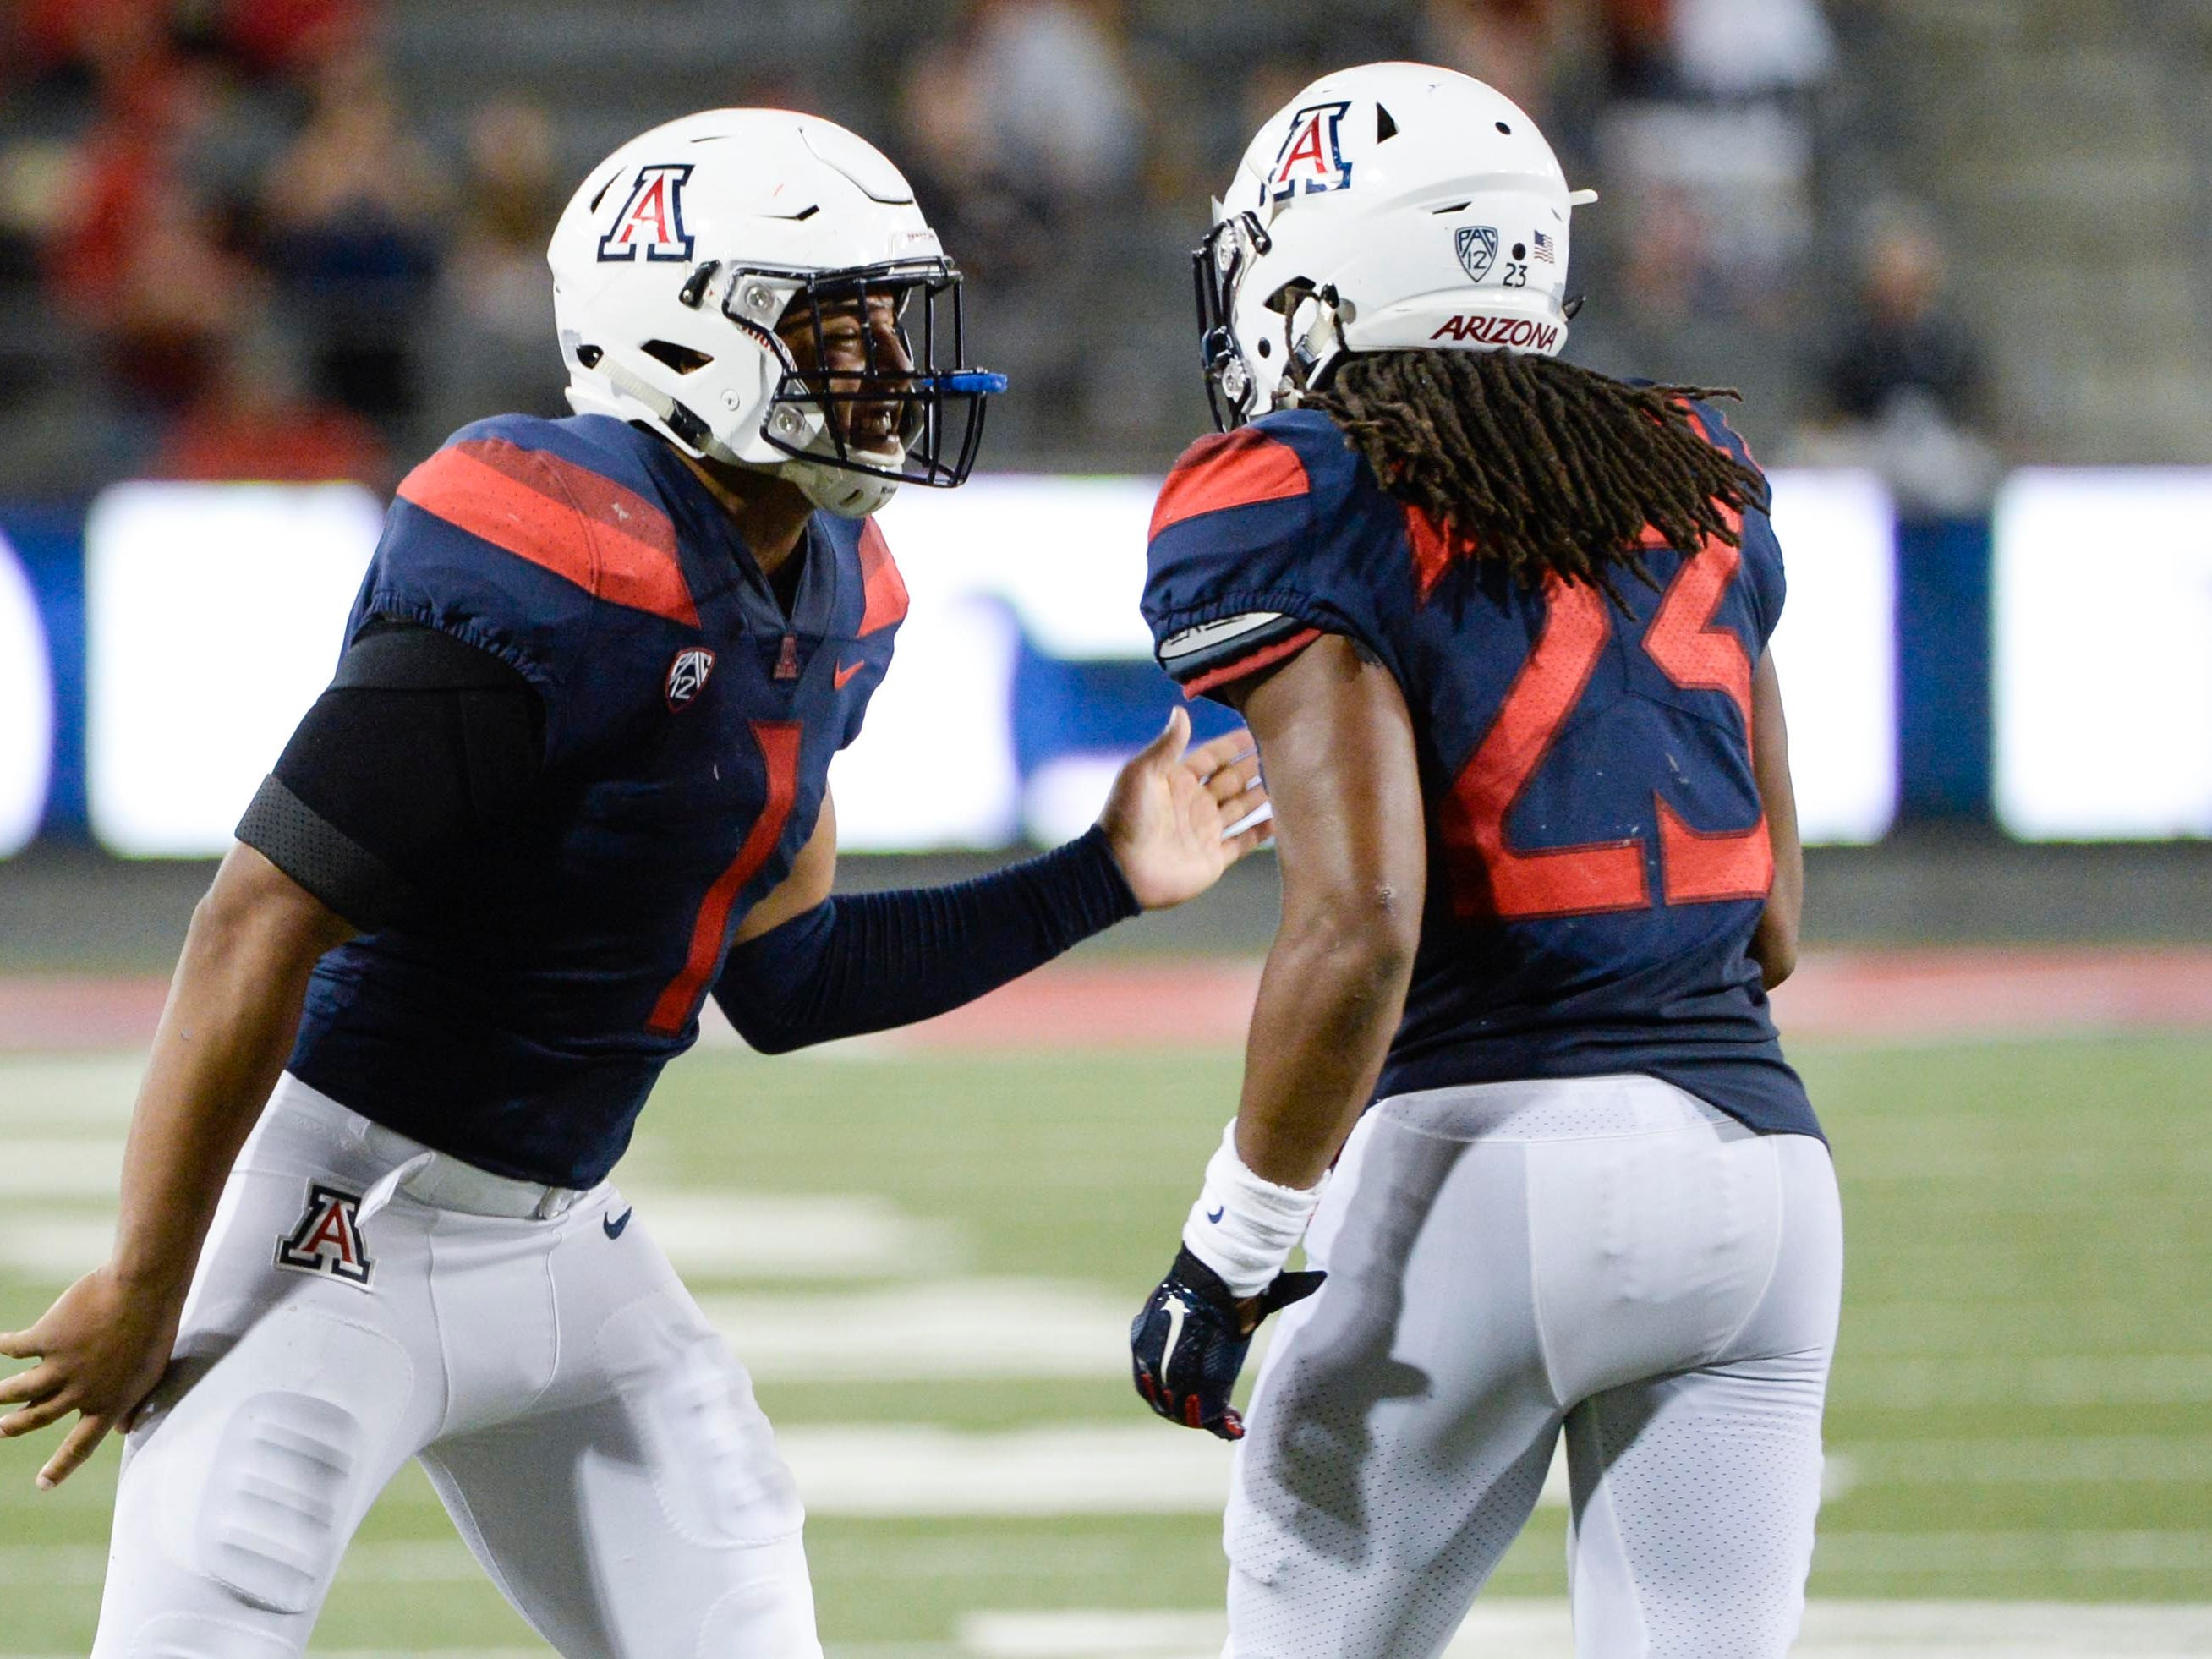 Sep 29, 2018; Tucson, AZ, USA; Arizona Wildcats linebacker Tony Fields II (1) and running back Gary Brightwell (23) (right) celebrate after a touchdown against the Southern California Trojans during the second half at Arizona Stadium. Mandatory Credit: Casey Sapio-USA TODAY Sports